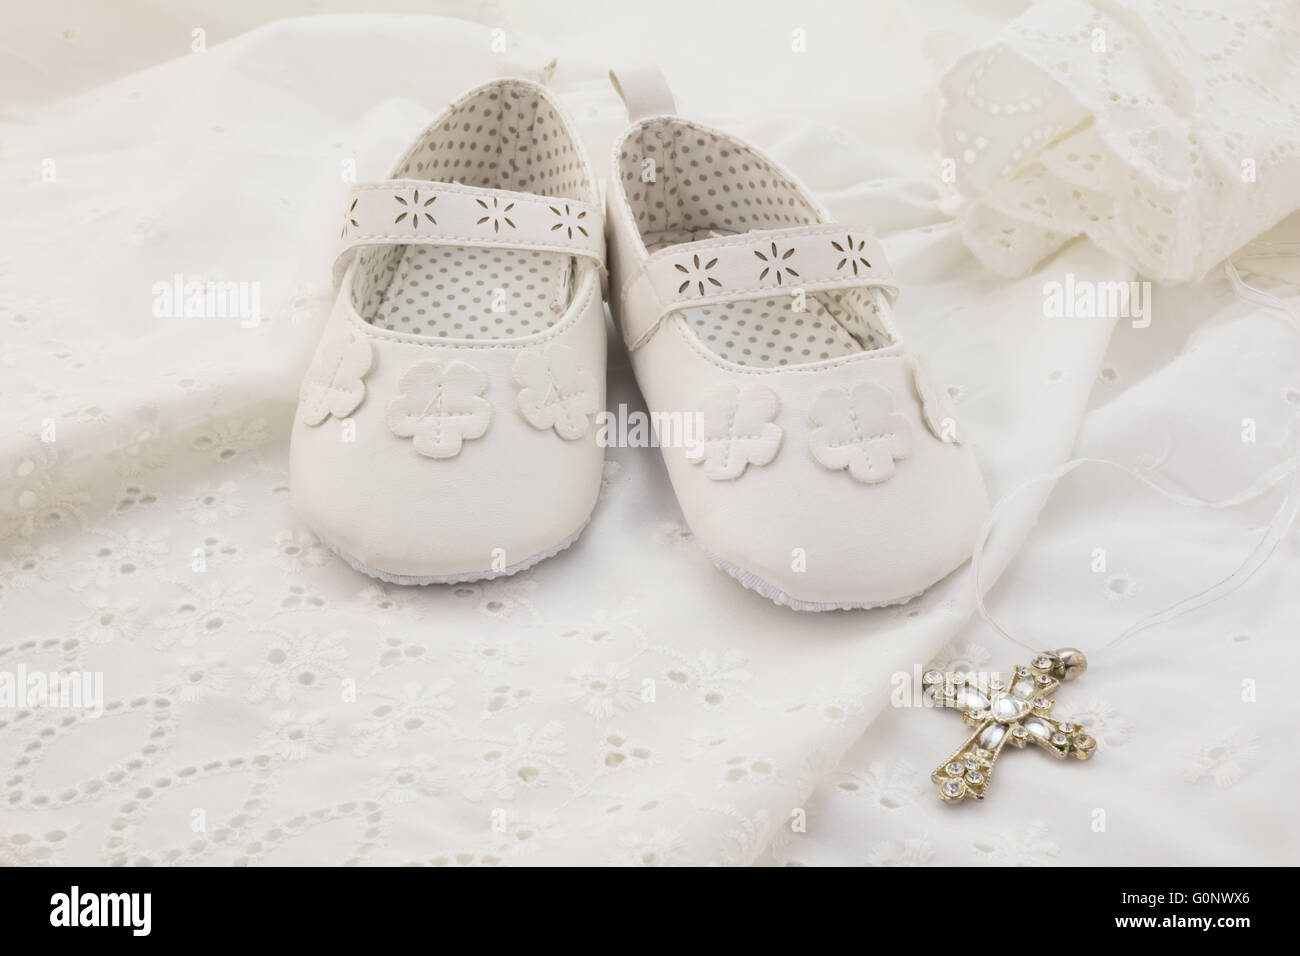 Baby christening white shoes with cross on white lace background - Stock Image